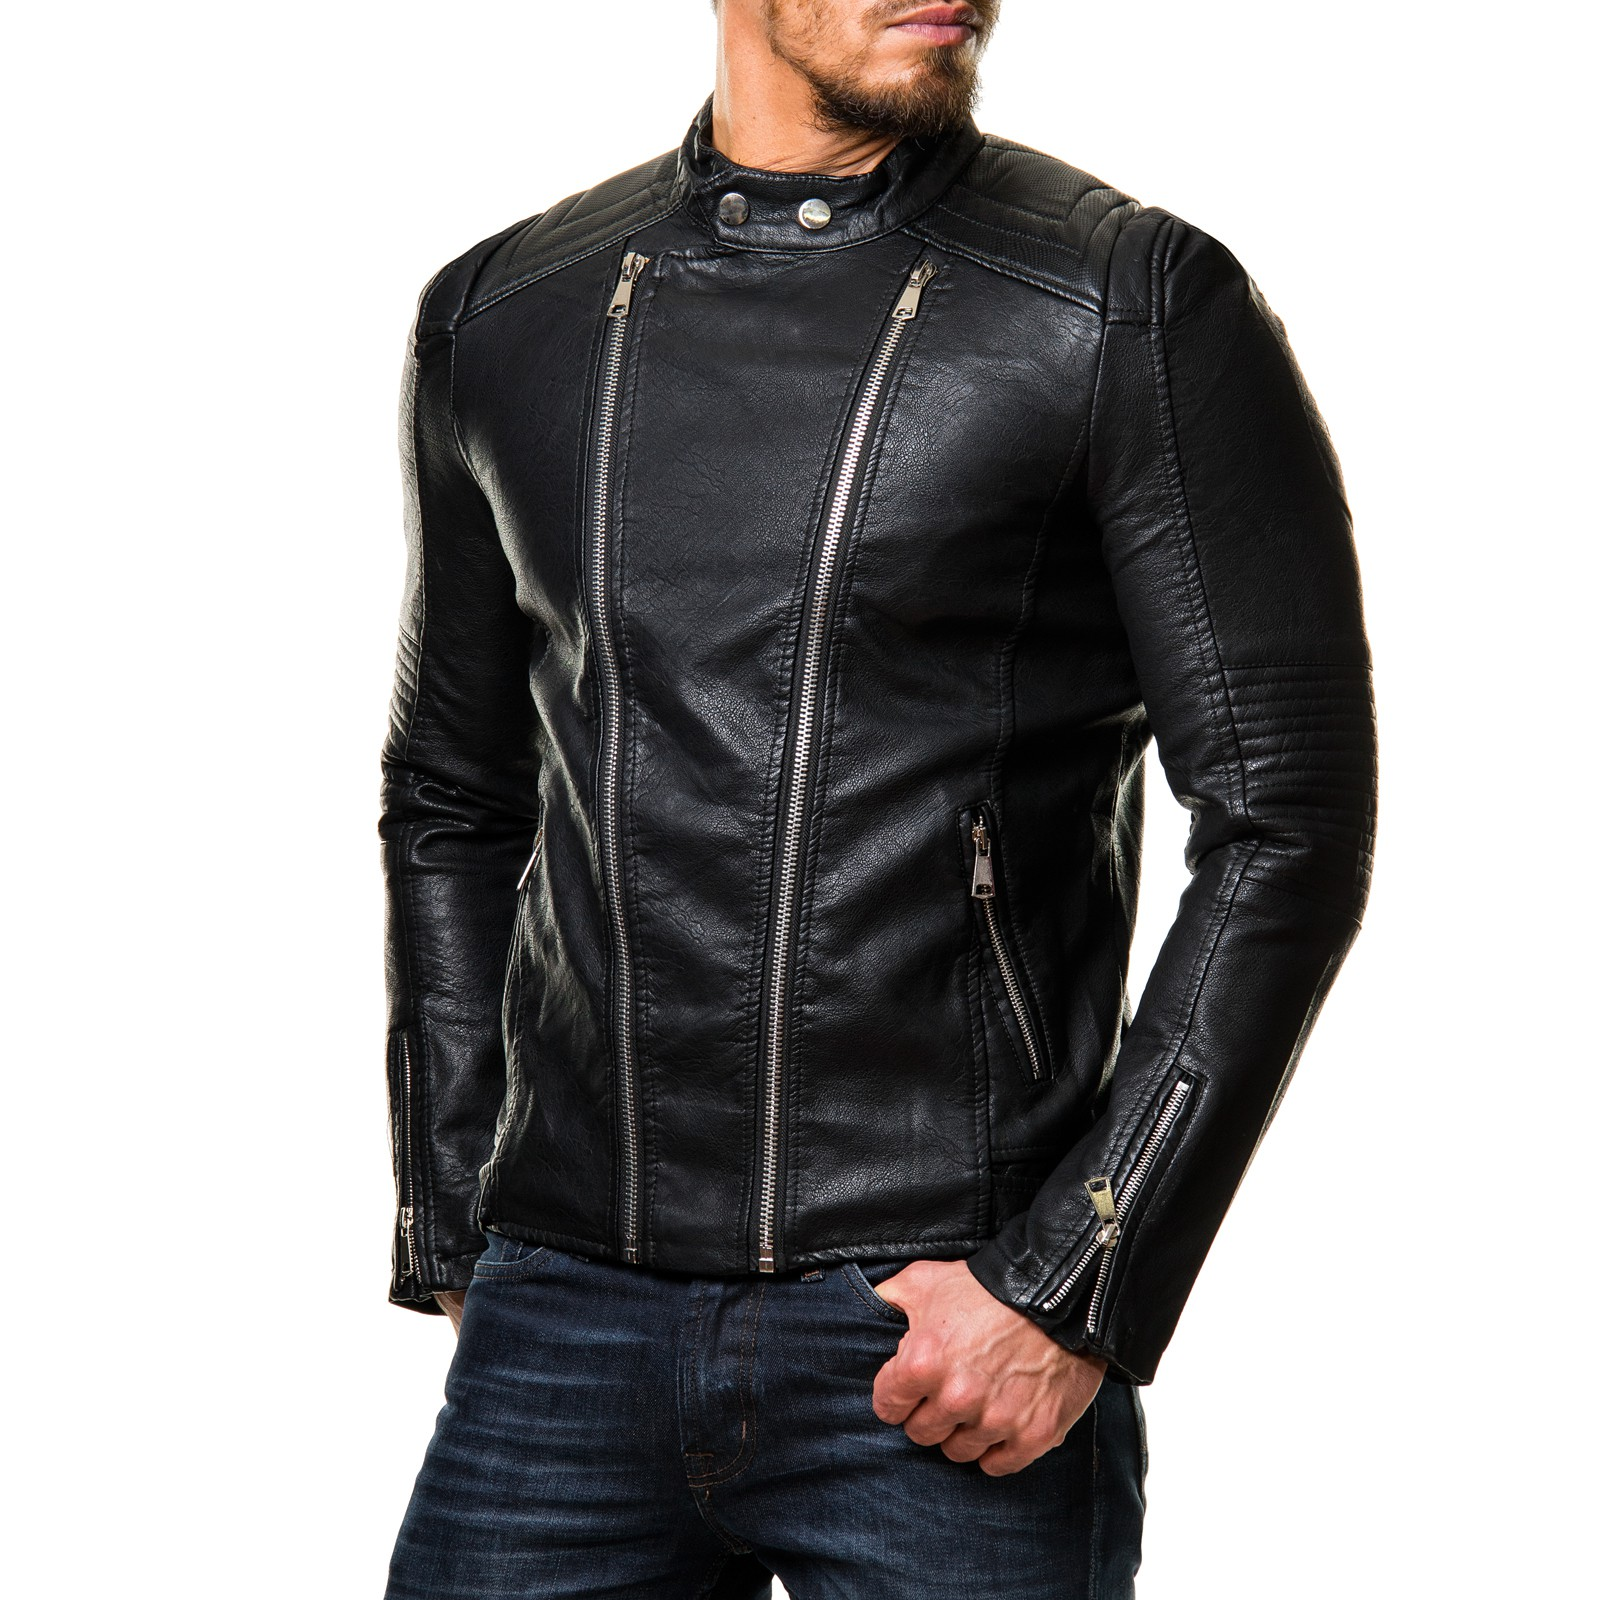 prestige homme 20 biker jacke gesteppt body slimfit zipper. Black Bedroom Furniture Sets. Home Design Ideas